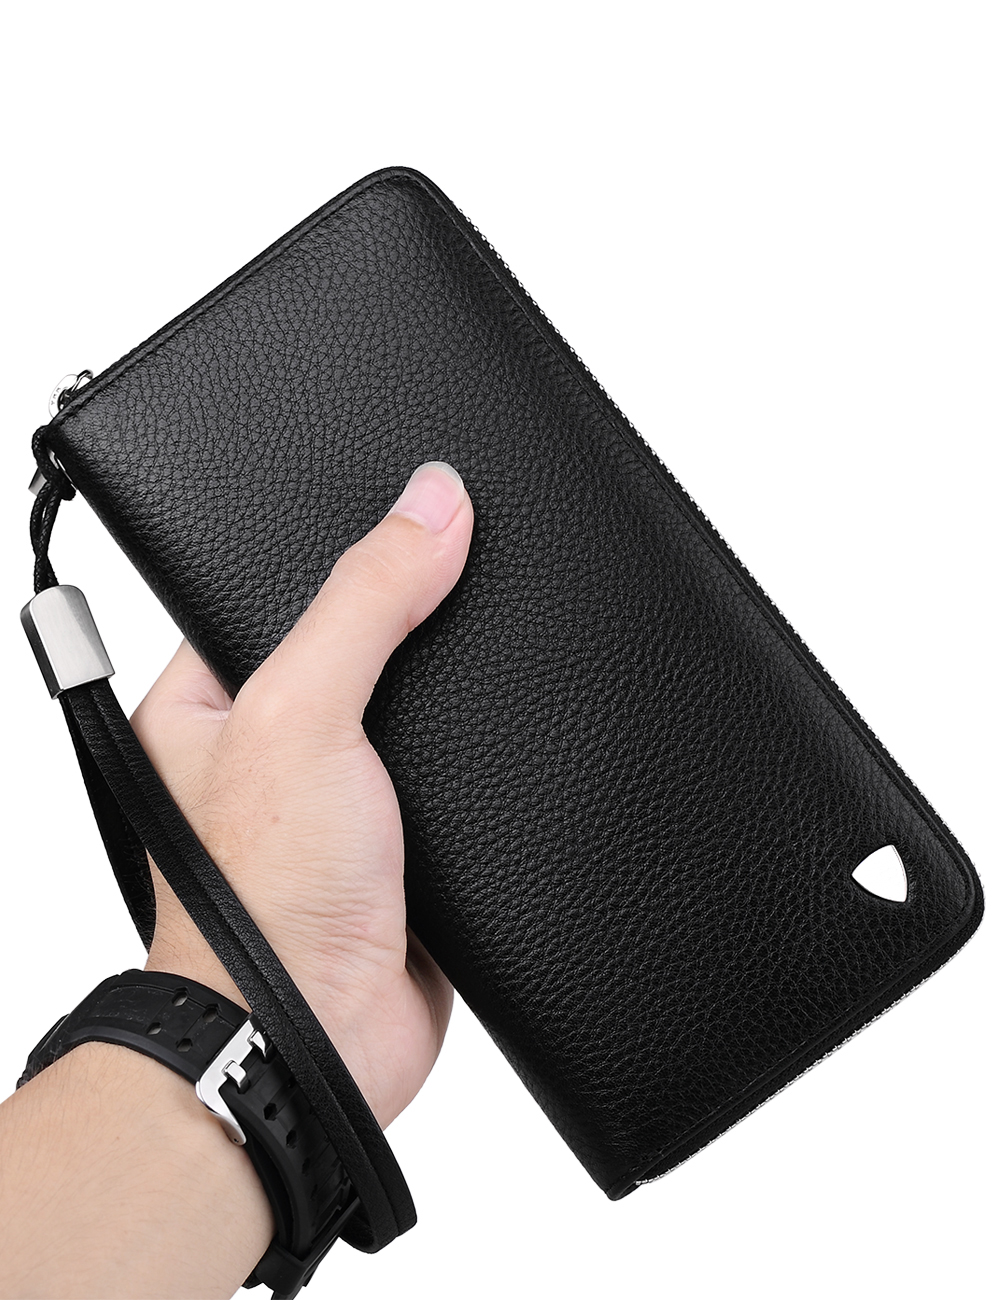 WilliamPOLO Long Clutch Bag Leather Wallet Men Genuine Leather Luxury Brand Men Zipper Wallets Multi Card